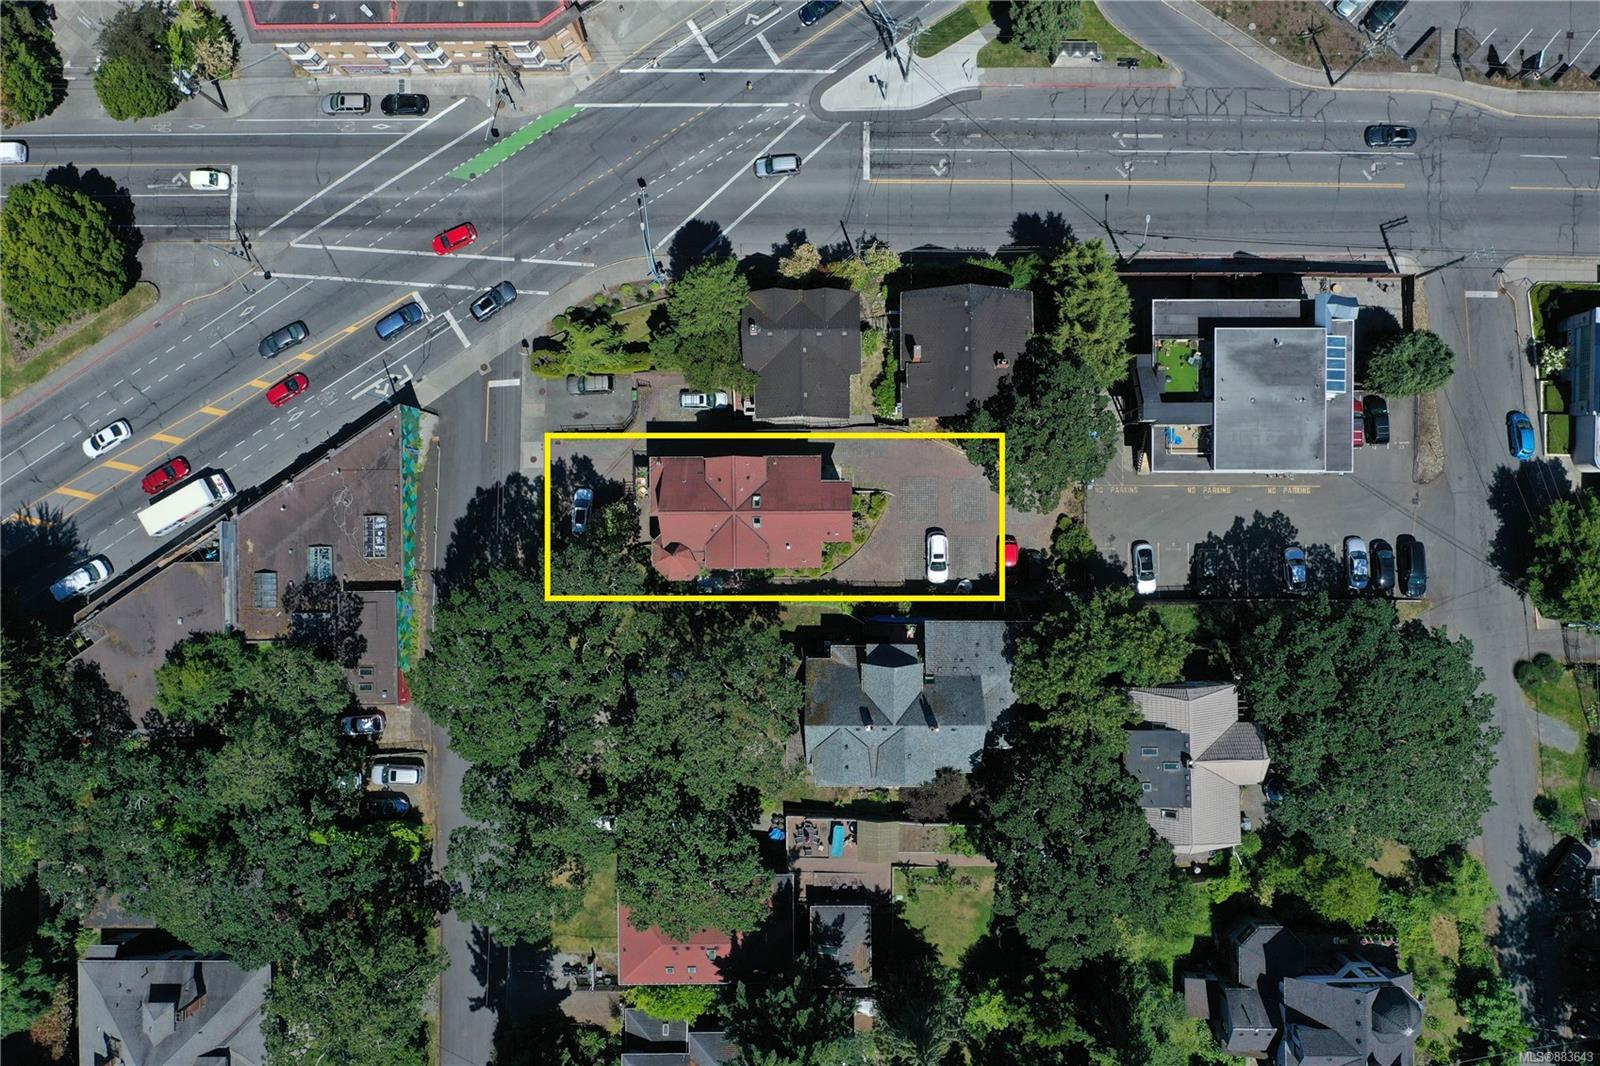 DEVELOPER ALERT. Re-development opportunity with land assembly site in the city of Victoria. Site sits on Oak Bay Junction, connecting the vibrant neighbourhoods of Fernwood, Rockland and Oak Bay, with all amenities within walking distance. The Official Community Plan has designated this area for Large Urban Village. The seven rental units between the three homes create a substantial holding property while determining the potential for Townhome or Multi-Family Development. To be bought in conjunction with MLS 883626 & MLS 883633